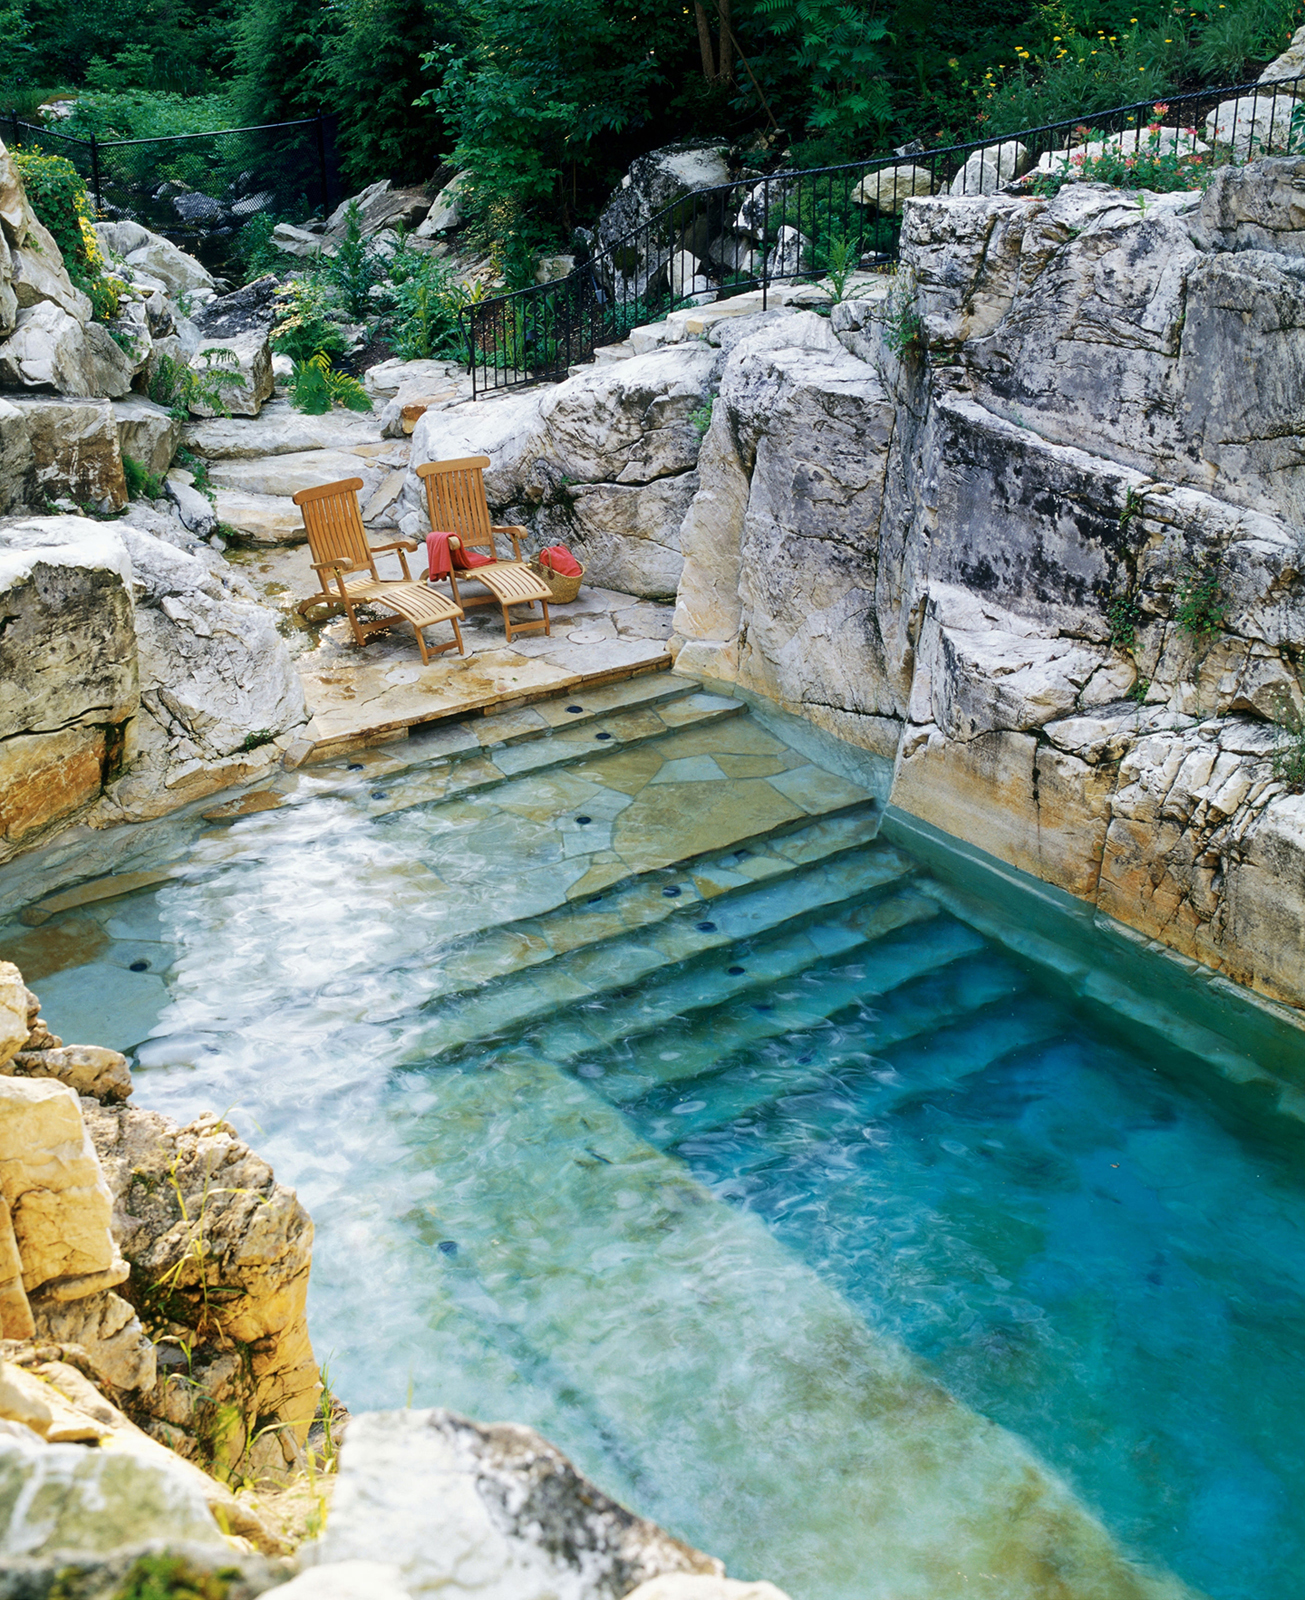 Natural Backyard Swimming Pool Converted From An Old Limestone Quarry Idesignarch Interior Design Architecture Amp Interior Decorating Emagazine